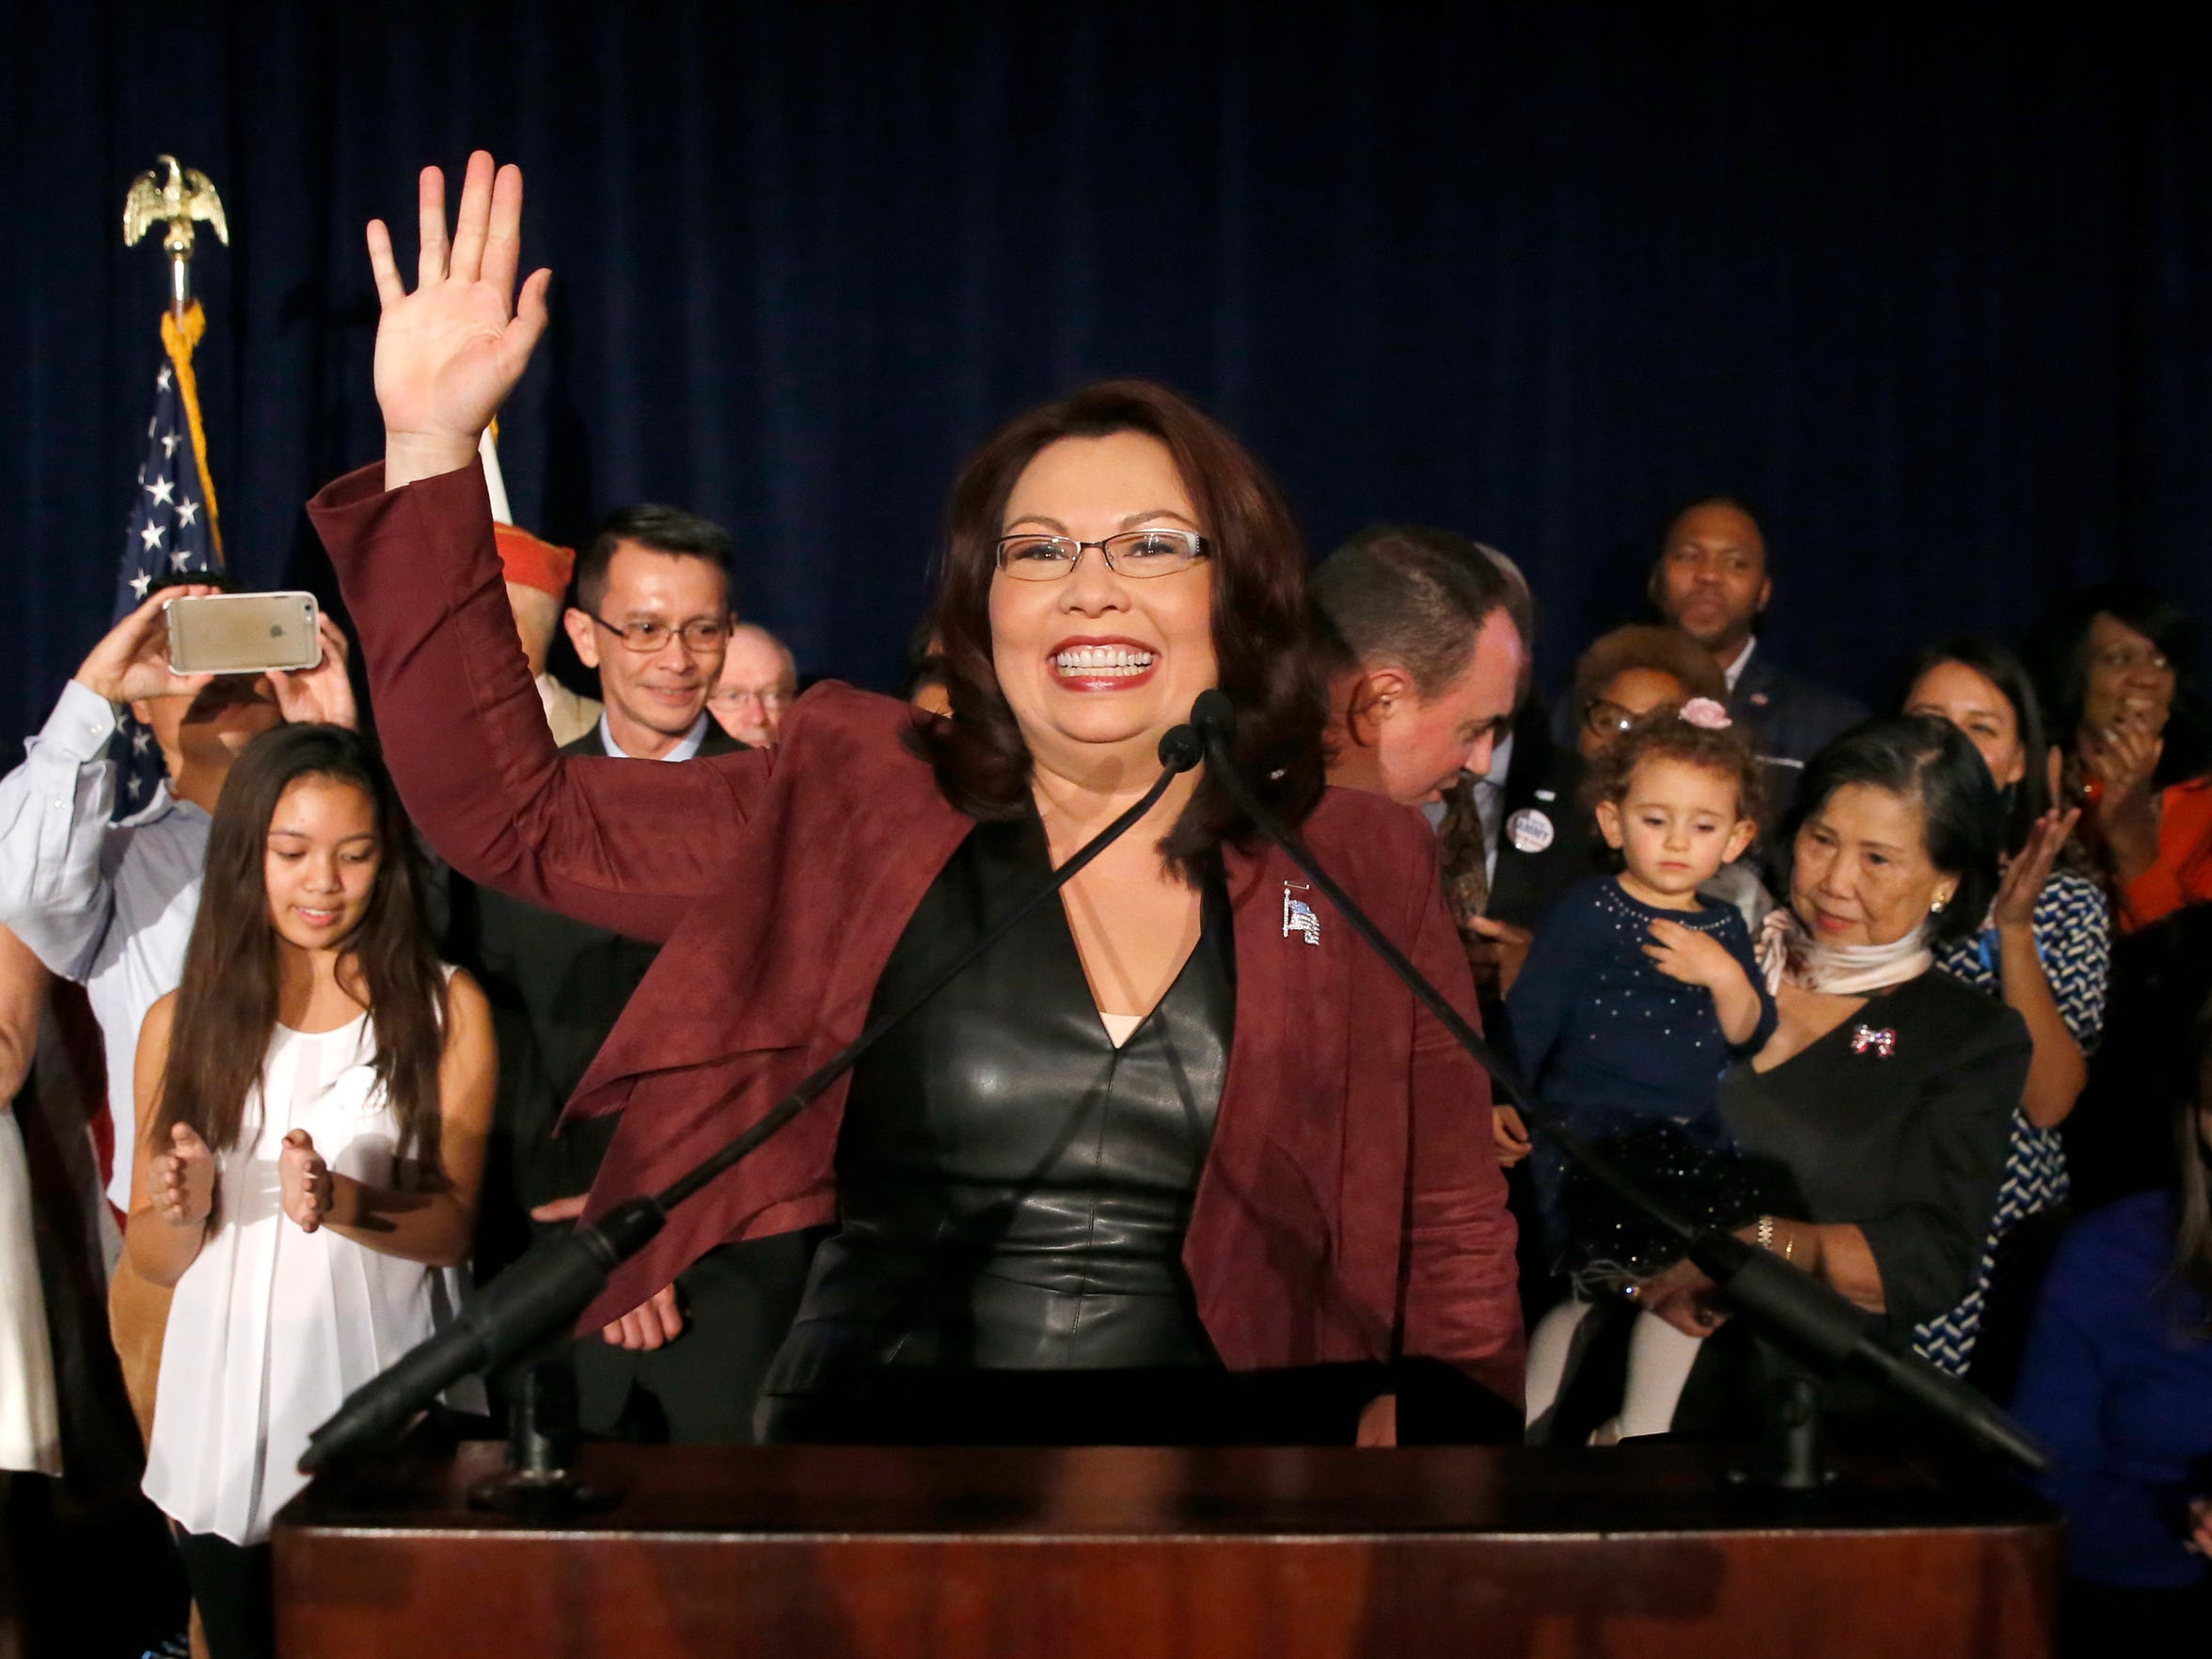 Tammy Duckworth celebrates her win over incumbent Sen. Mark Kirk, R-Ill., on Nov. 8, 2016, in Chicago.